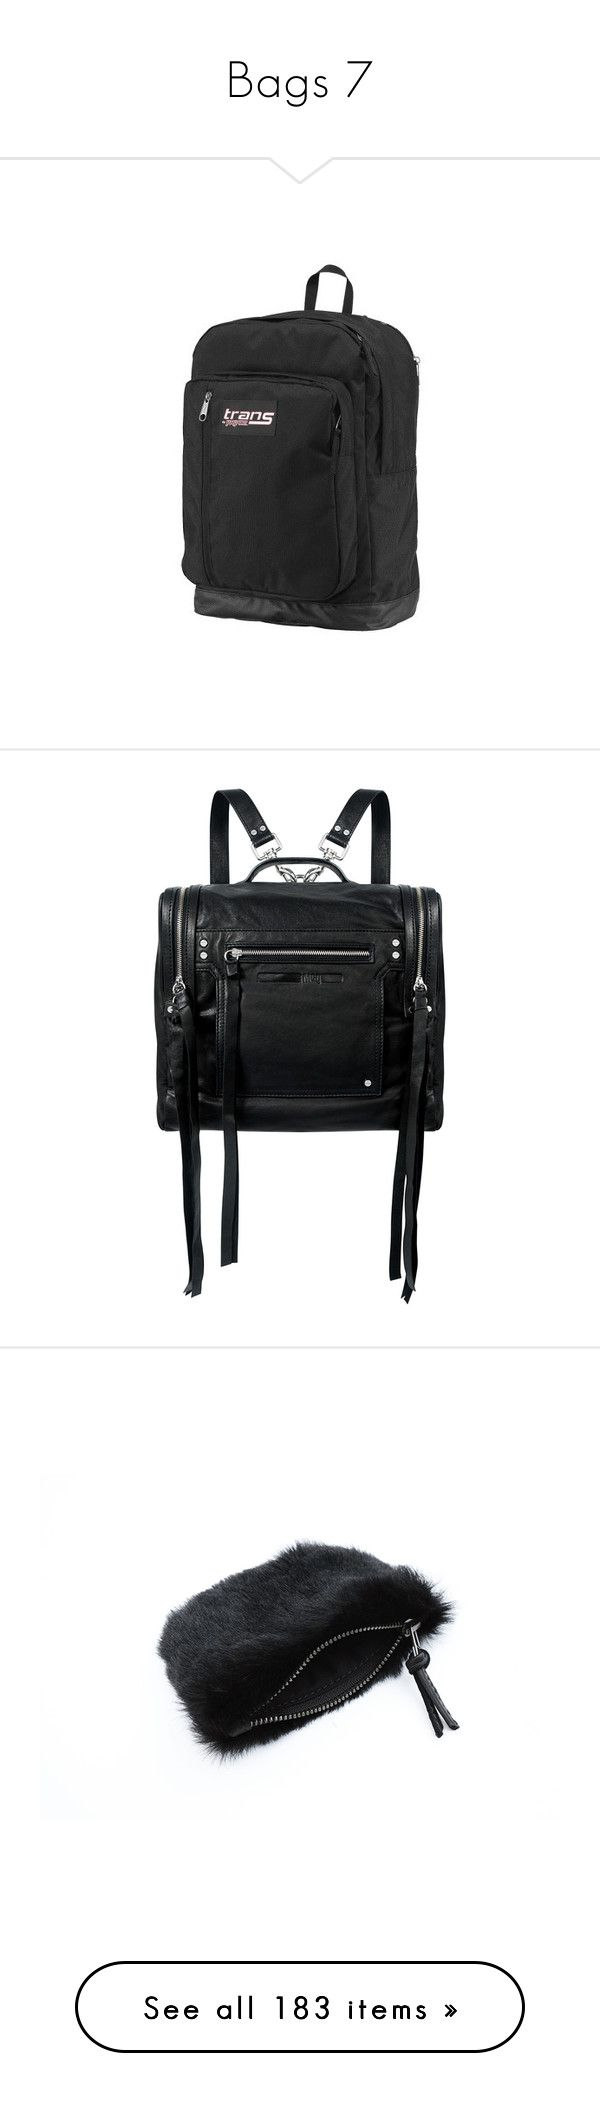 """""""Bags 7"""" by k-ura ❤ liked on Polyvore featuring bags, backpacks, jansport backpack, jansport rucksack, daypack bag, day pack backpack, rucksack bags, accessories, leather zip backpack and studded backpack"""